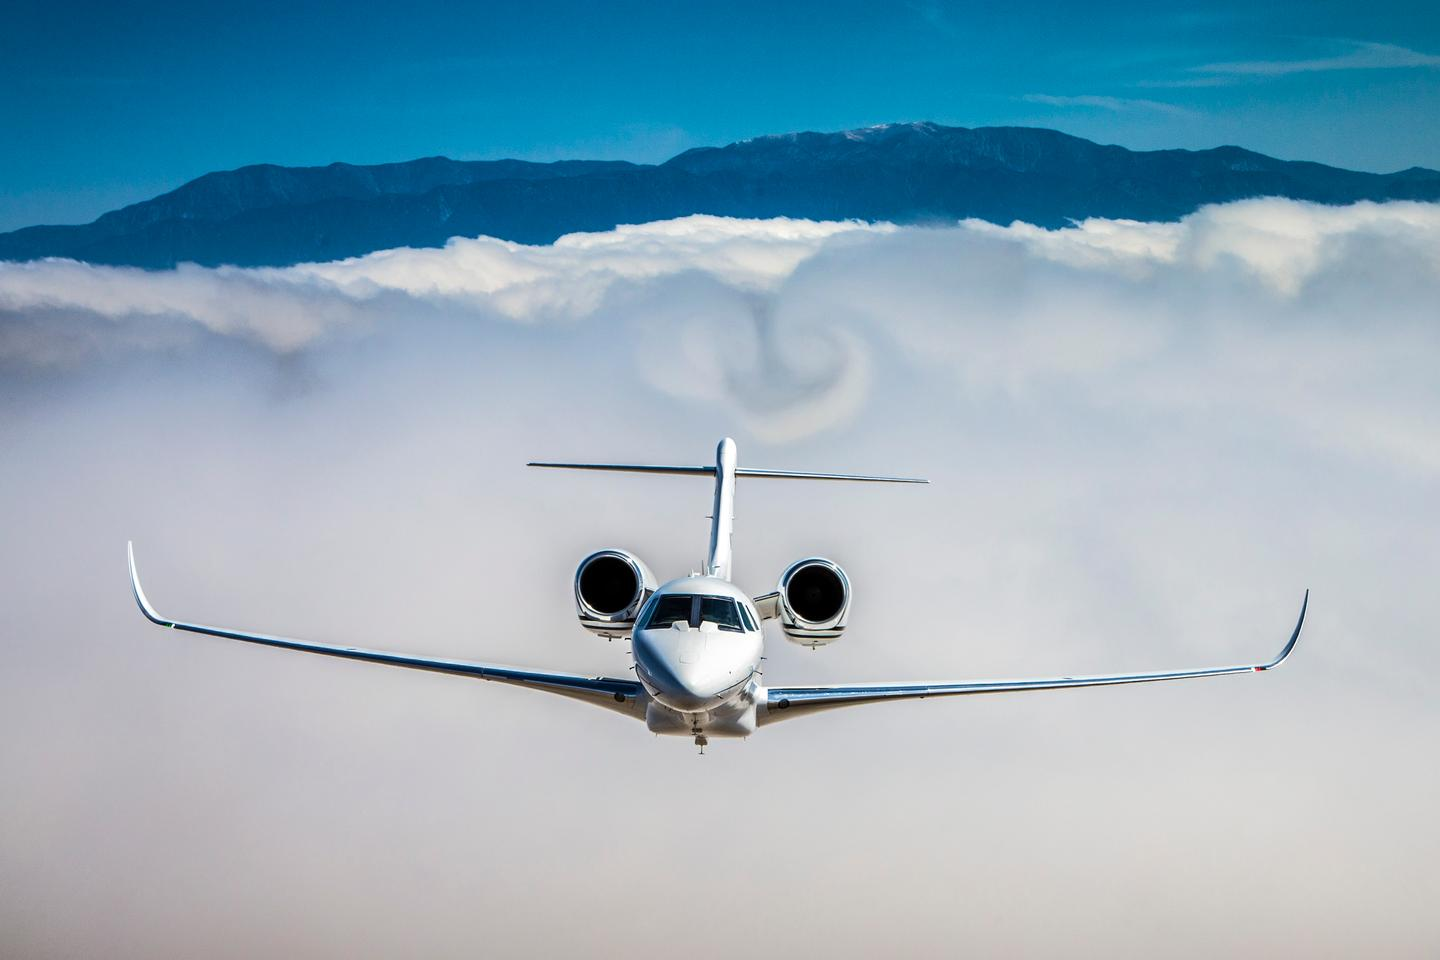 Cessna's Citation X+ has set four new city-to-city speed records over recognized courses across the US